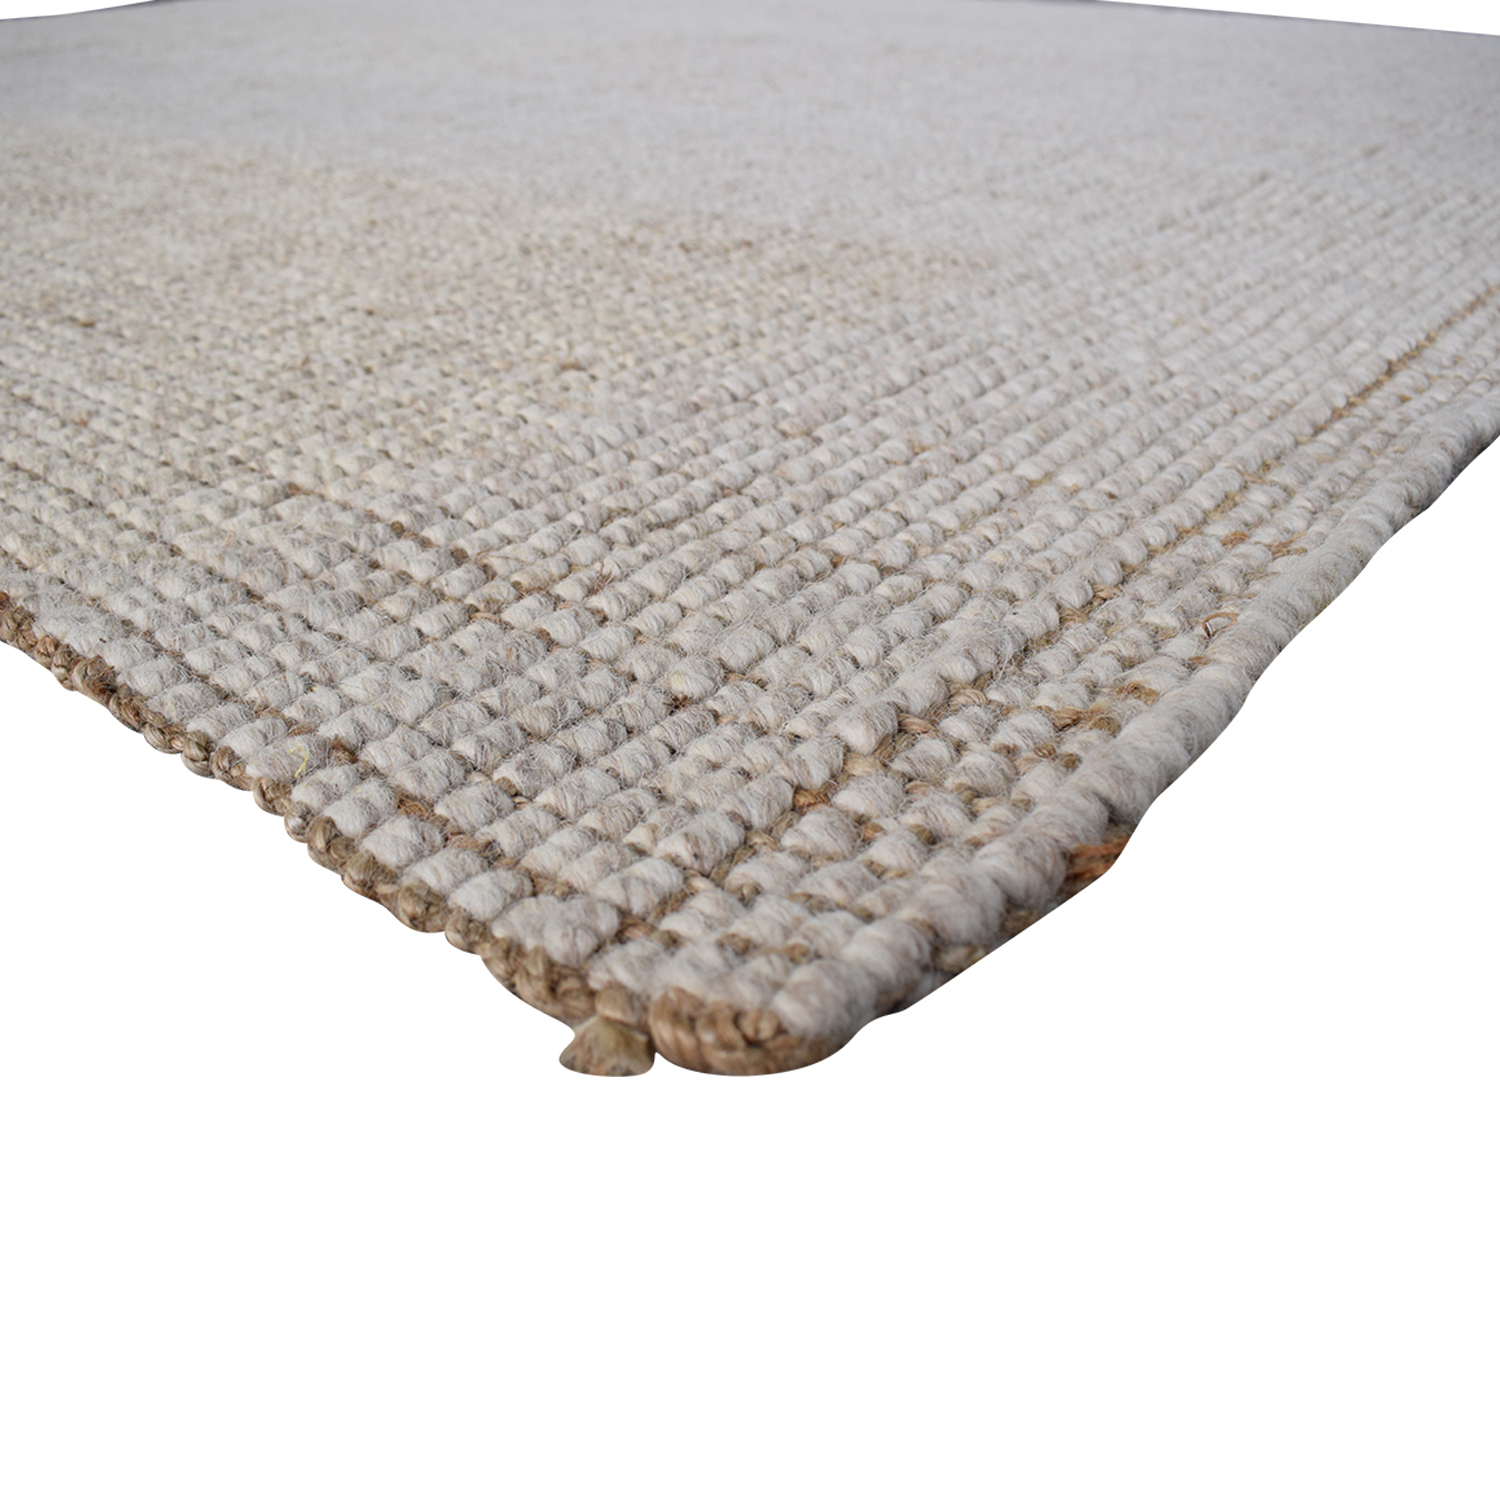 Pottery Barn Chunky Wool and Jute Rug sale